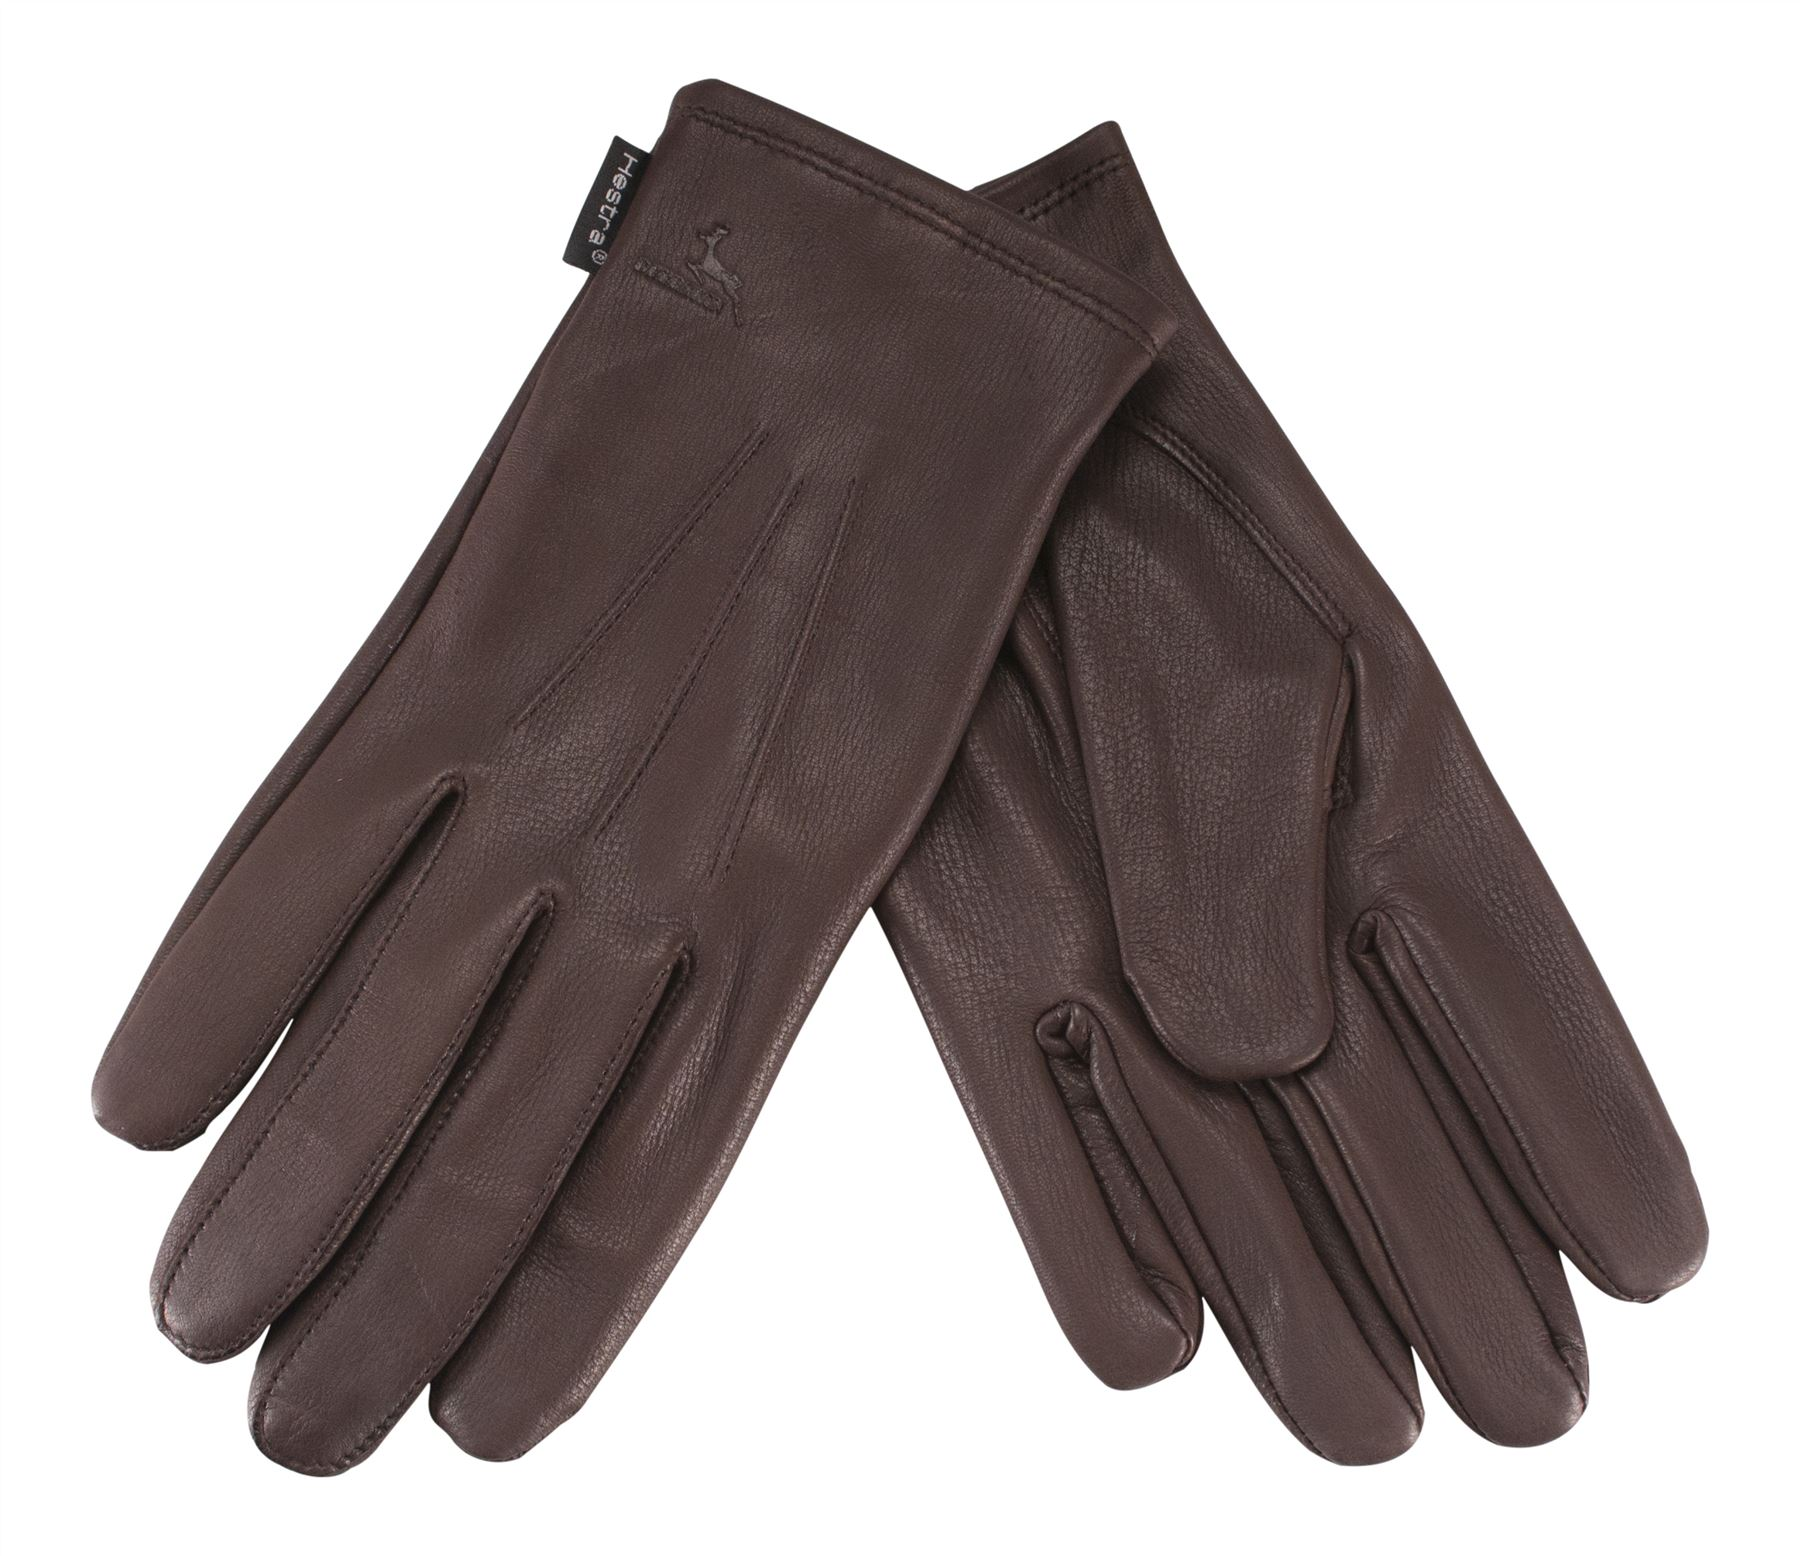 Mens deerskin gloves - Hestra Mens Deer Skin Leather Gloves Silk Lined